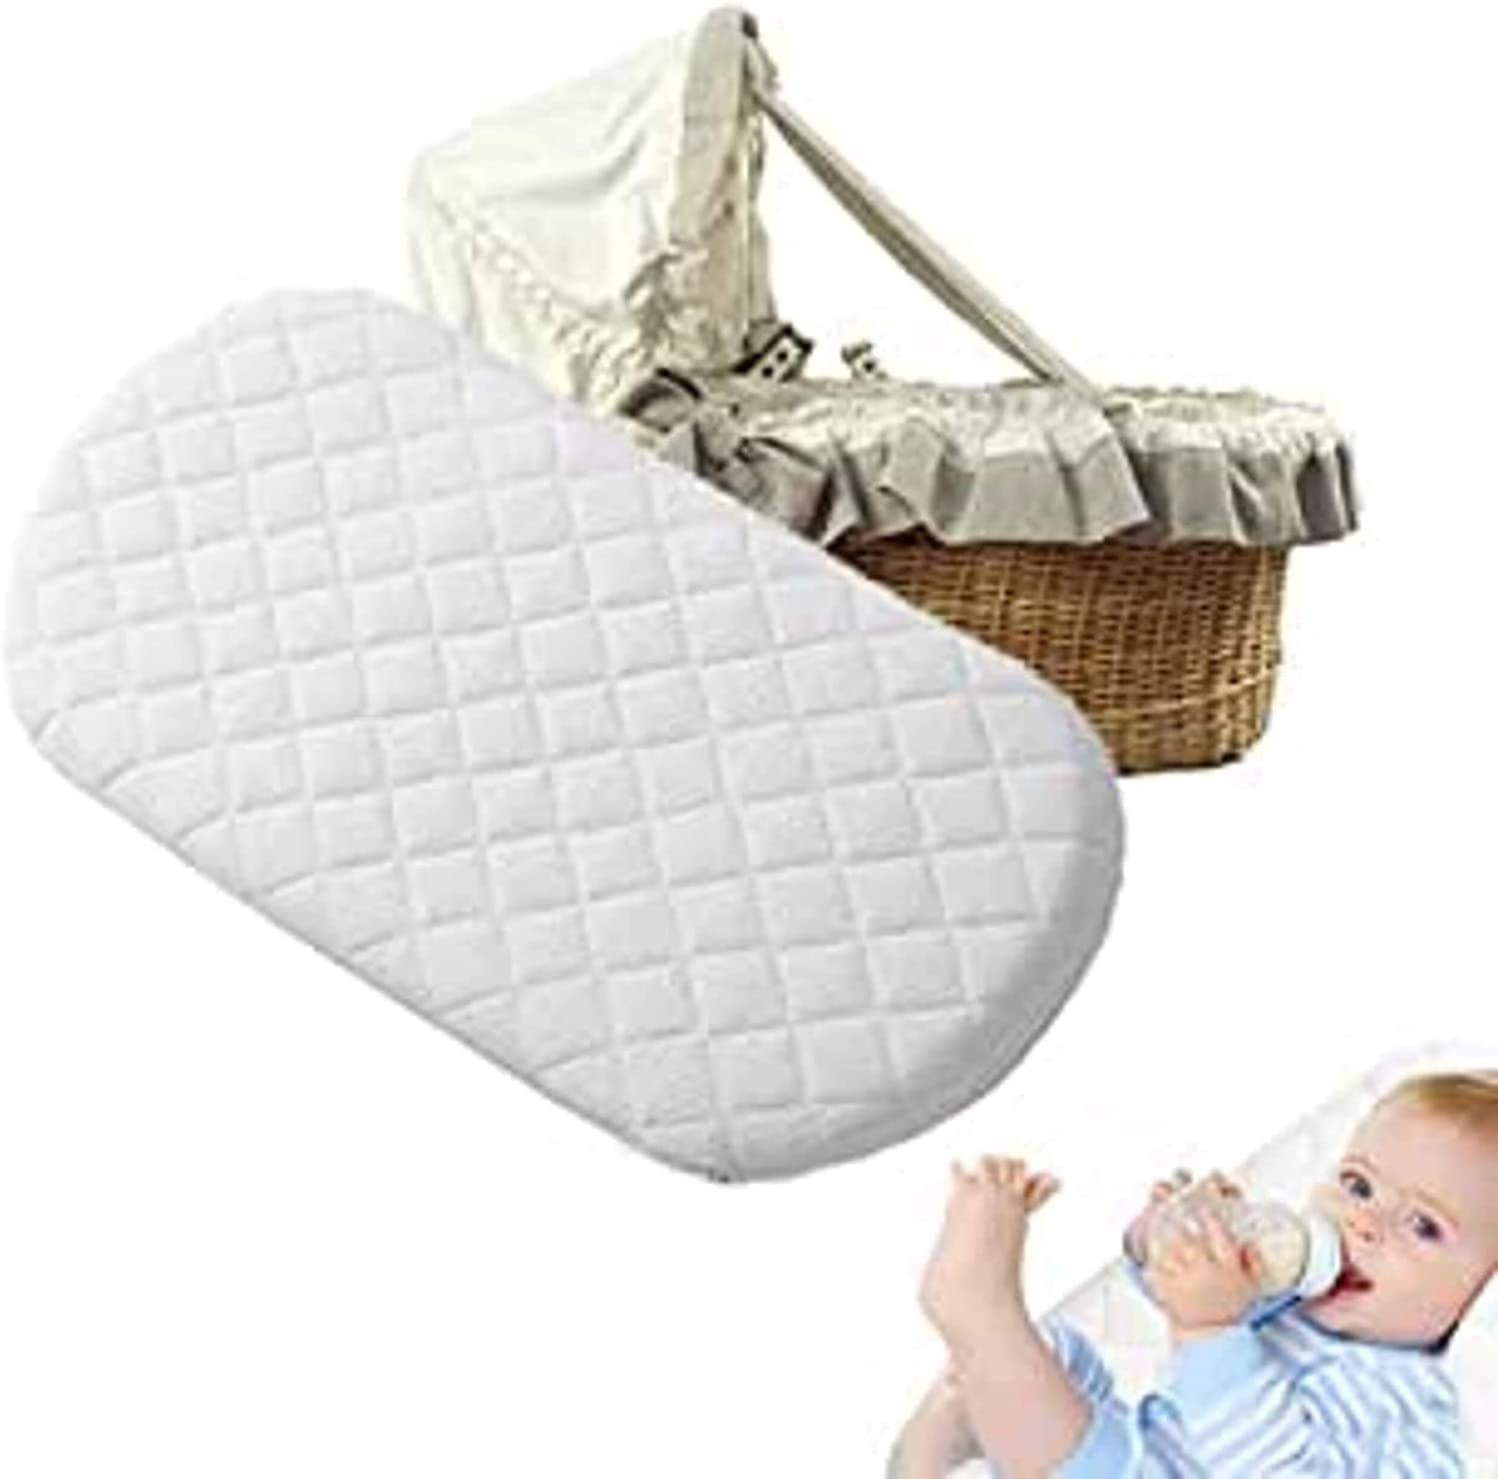 Mothercare Baby Mattress Pram Oval Shaped Bassinet Baskets with Quilted Washable Covers Pram Moses Basket Crib 66 x 28 x 4 cm Microfiber Fits Moses Basket Memory Foam Mattress